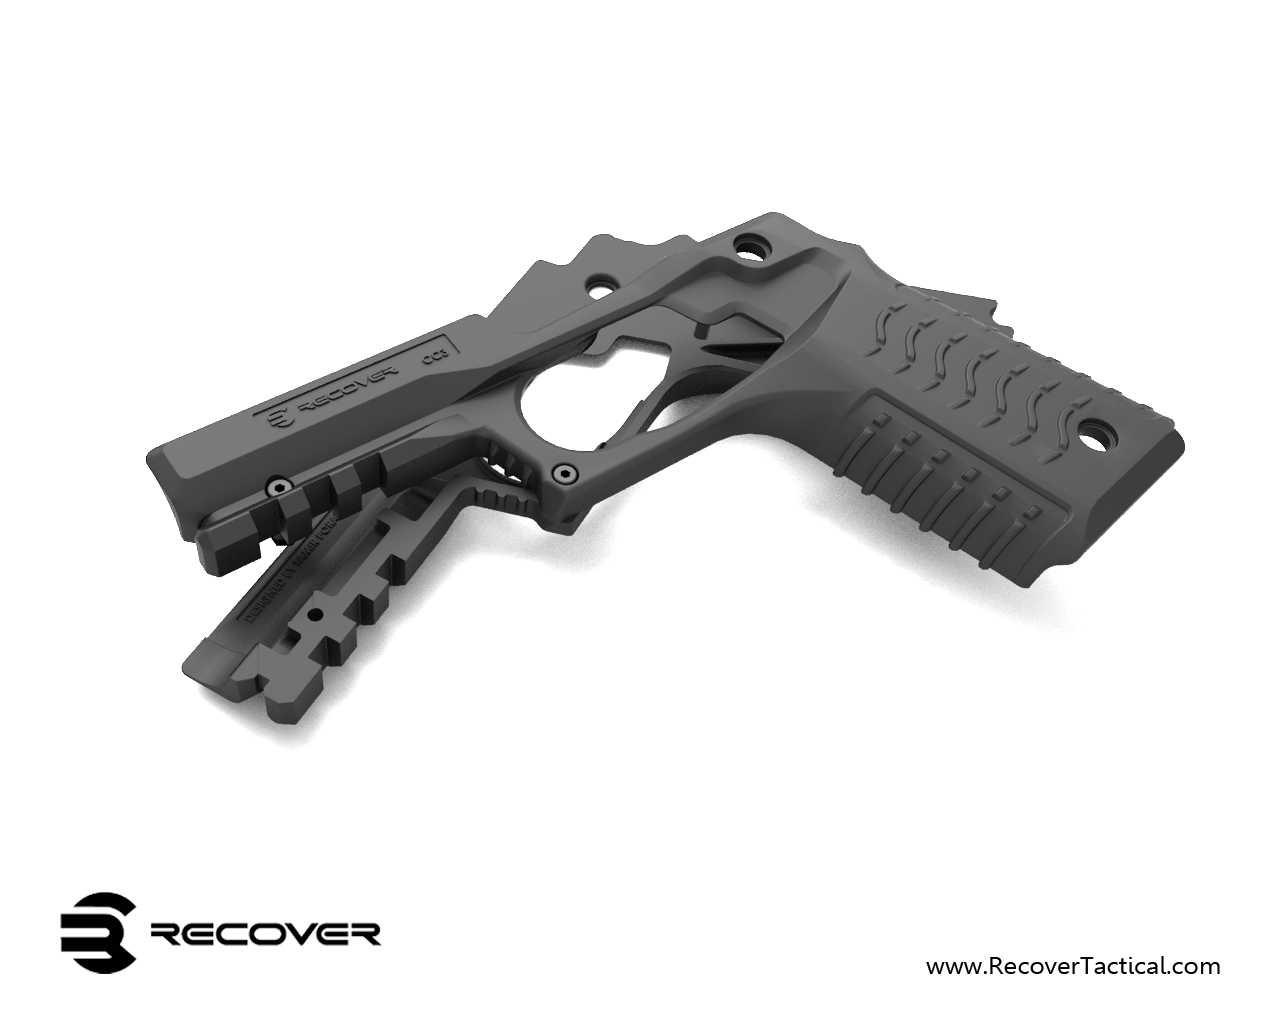 ReCover Tactical CC3 - Accessories - News - all4shooters.com